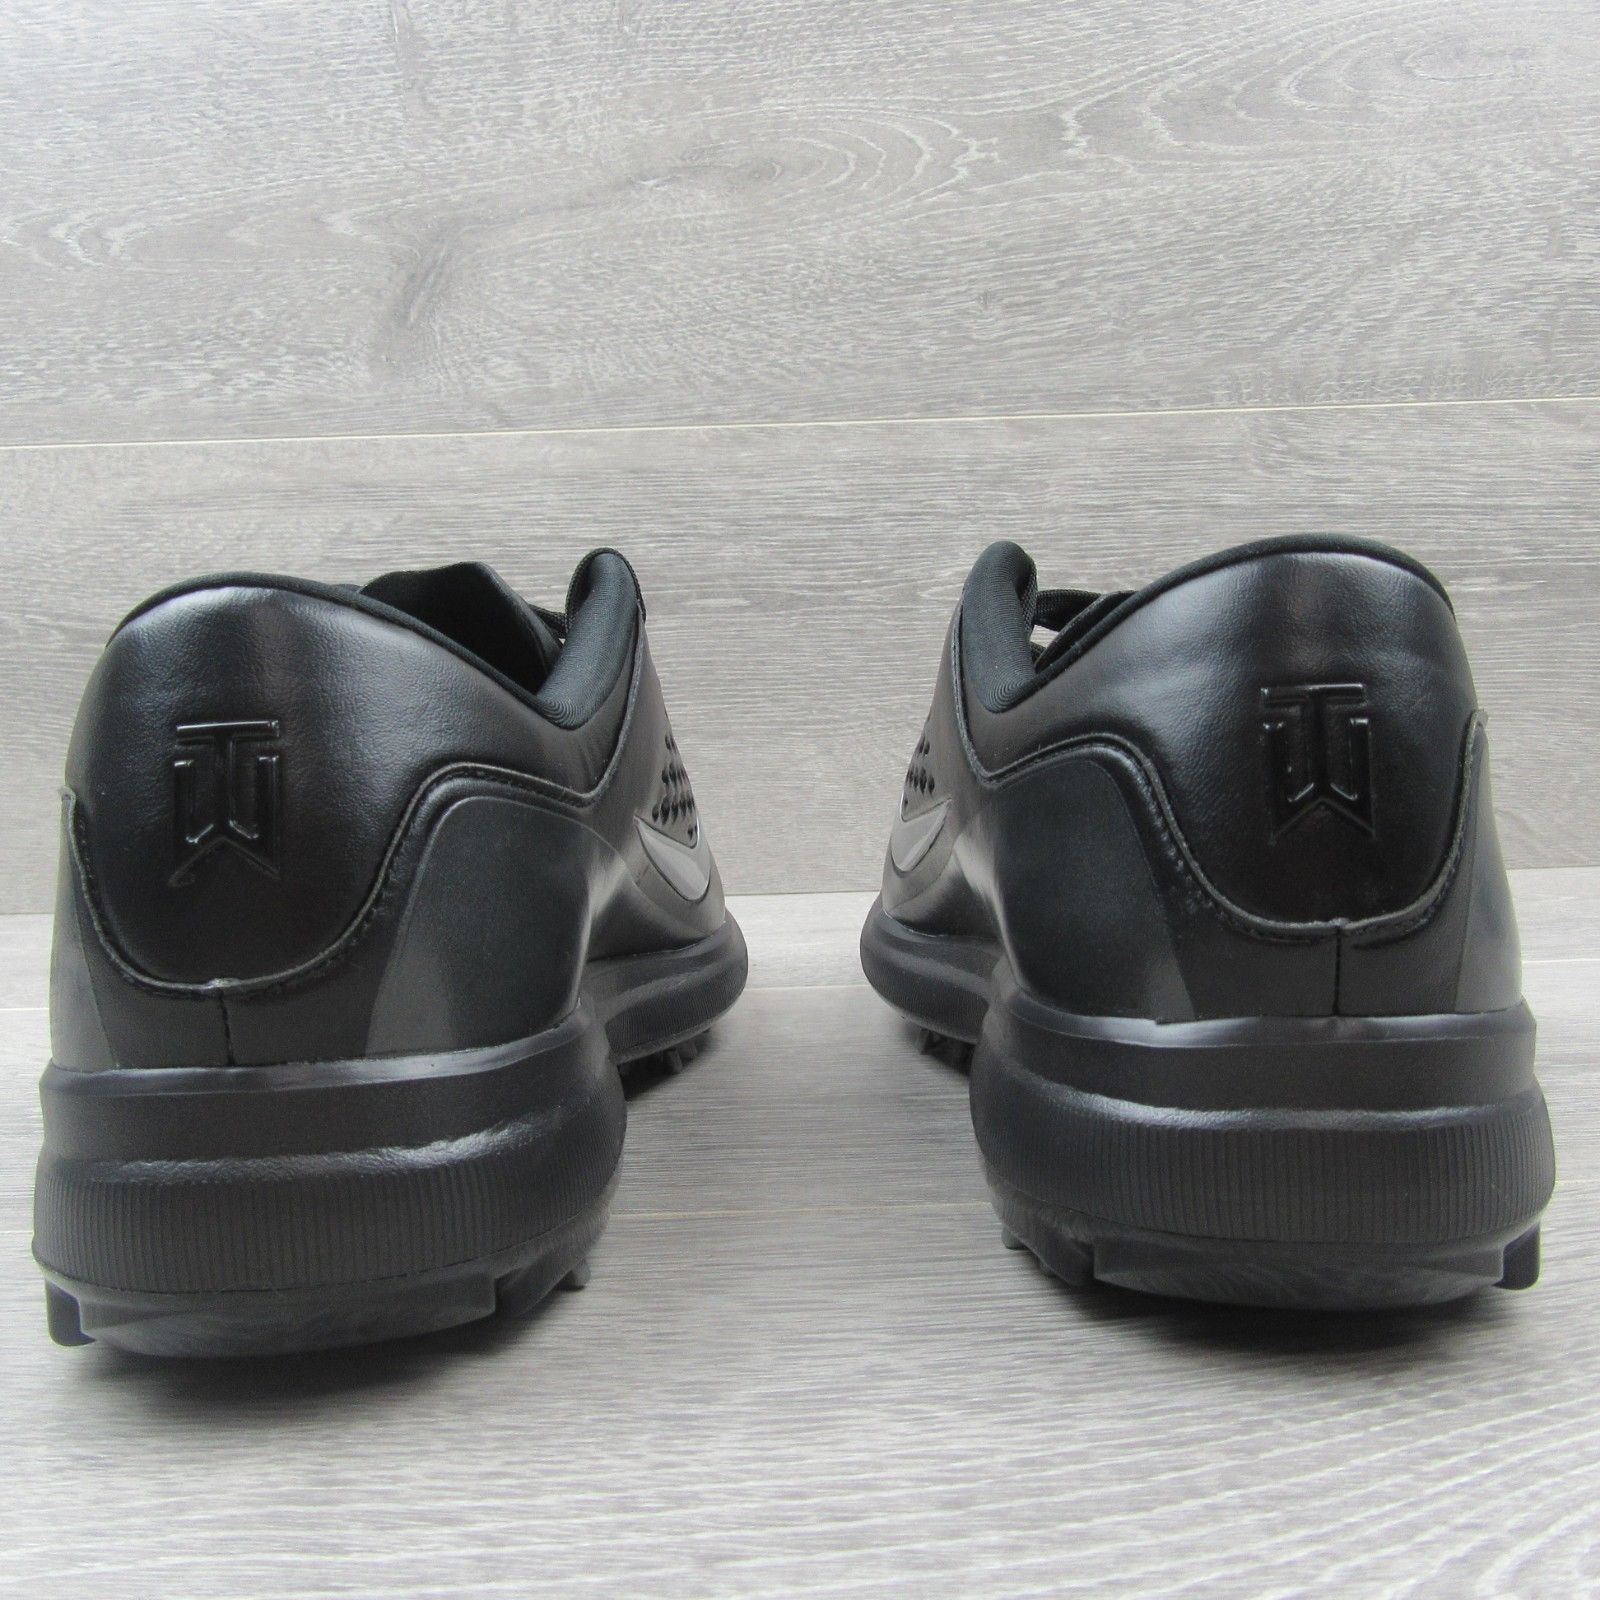 b974c46bb32a1 Nike Golf Air Zoom TW71 Tiger Woods Cleats Size 11 Mens Black Silver AA1990  002